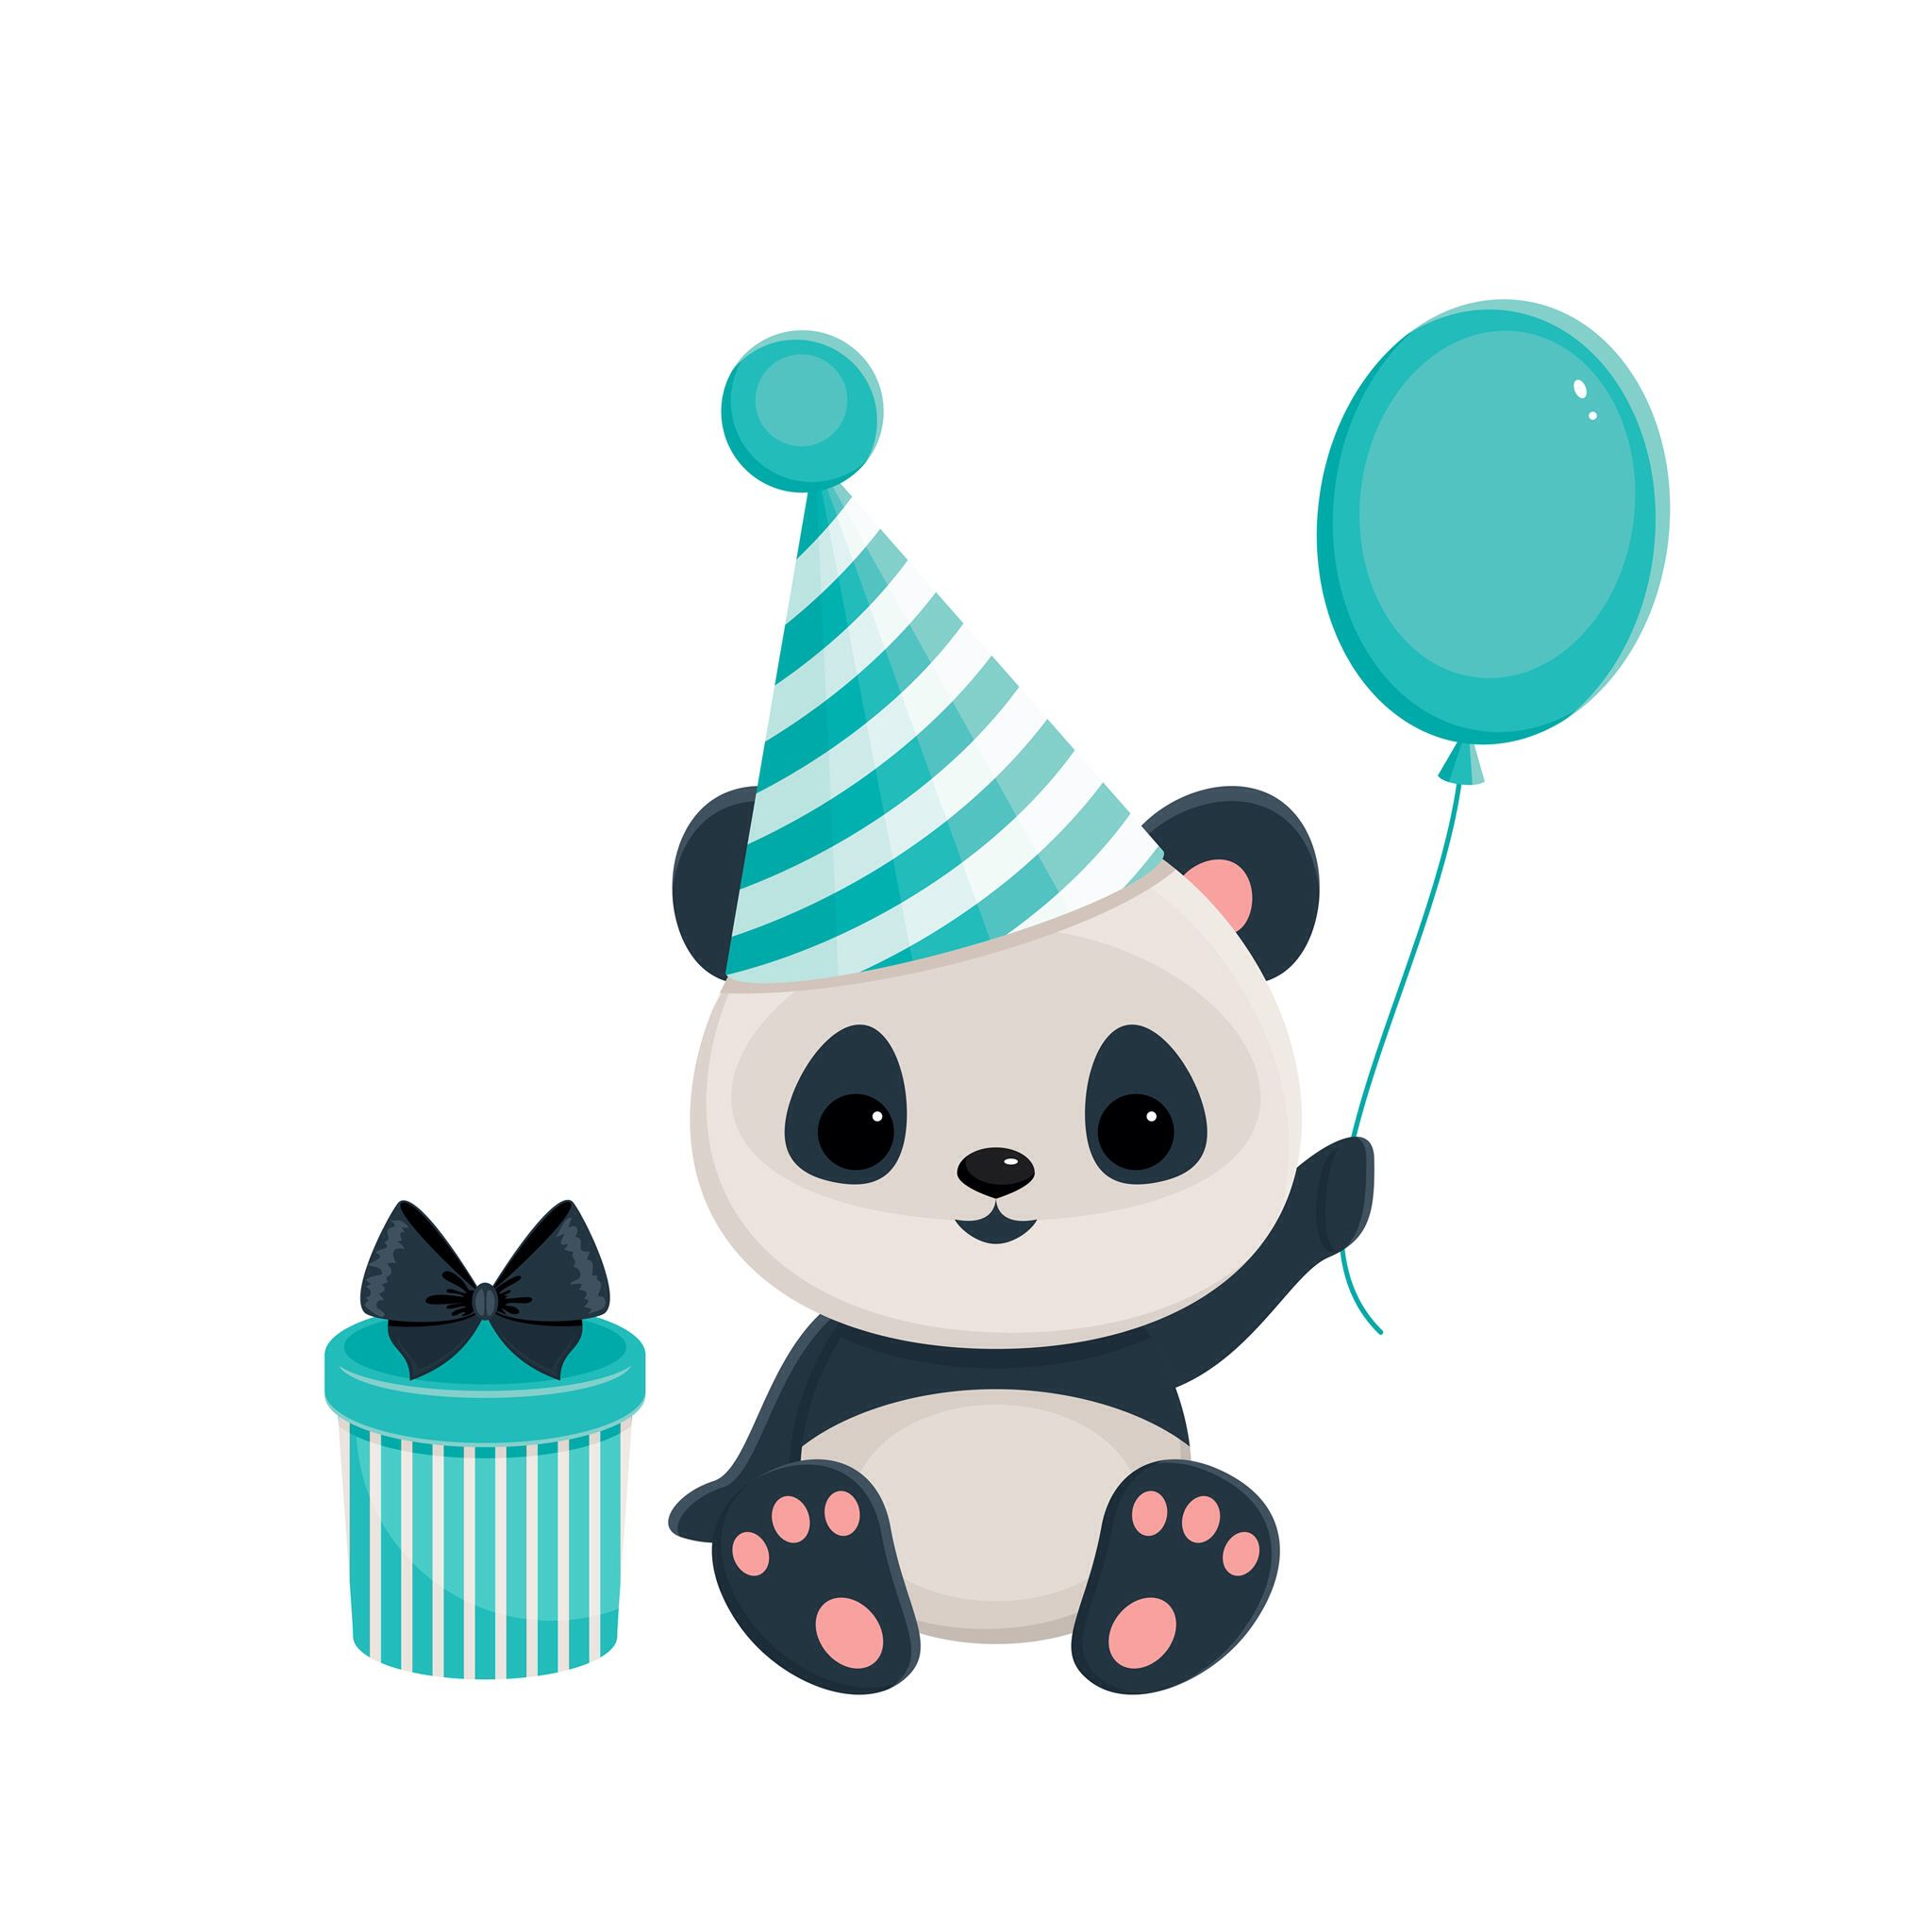 Downloaded From Girly Wallpapers Http Itunes Apple Com App Id1108375300 Thousands Of Hd Girly Wallpapers Just For You Panda Painting Cute Panda Panda Gifts